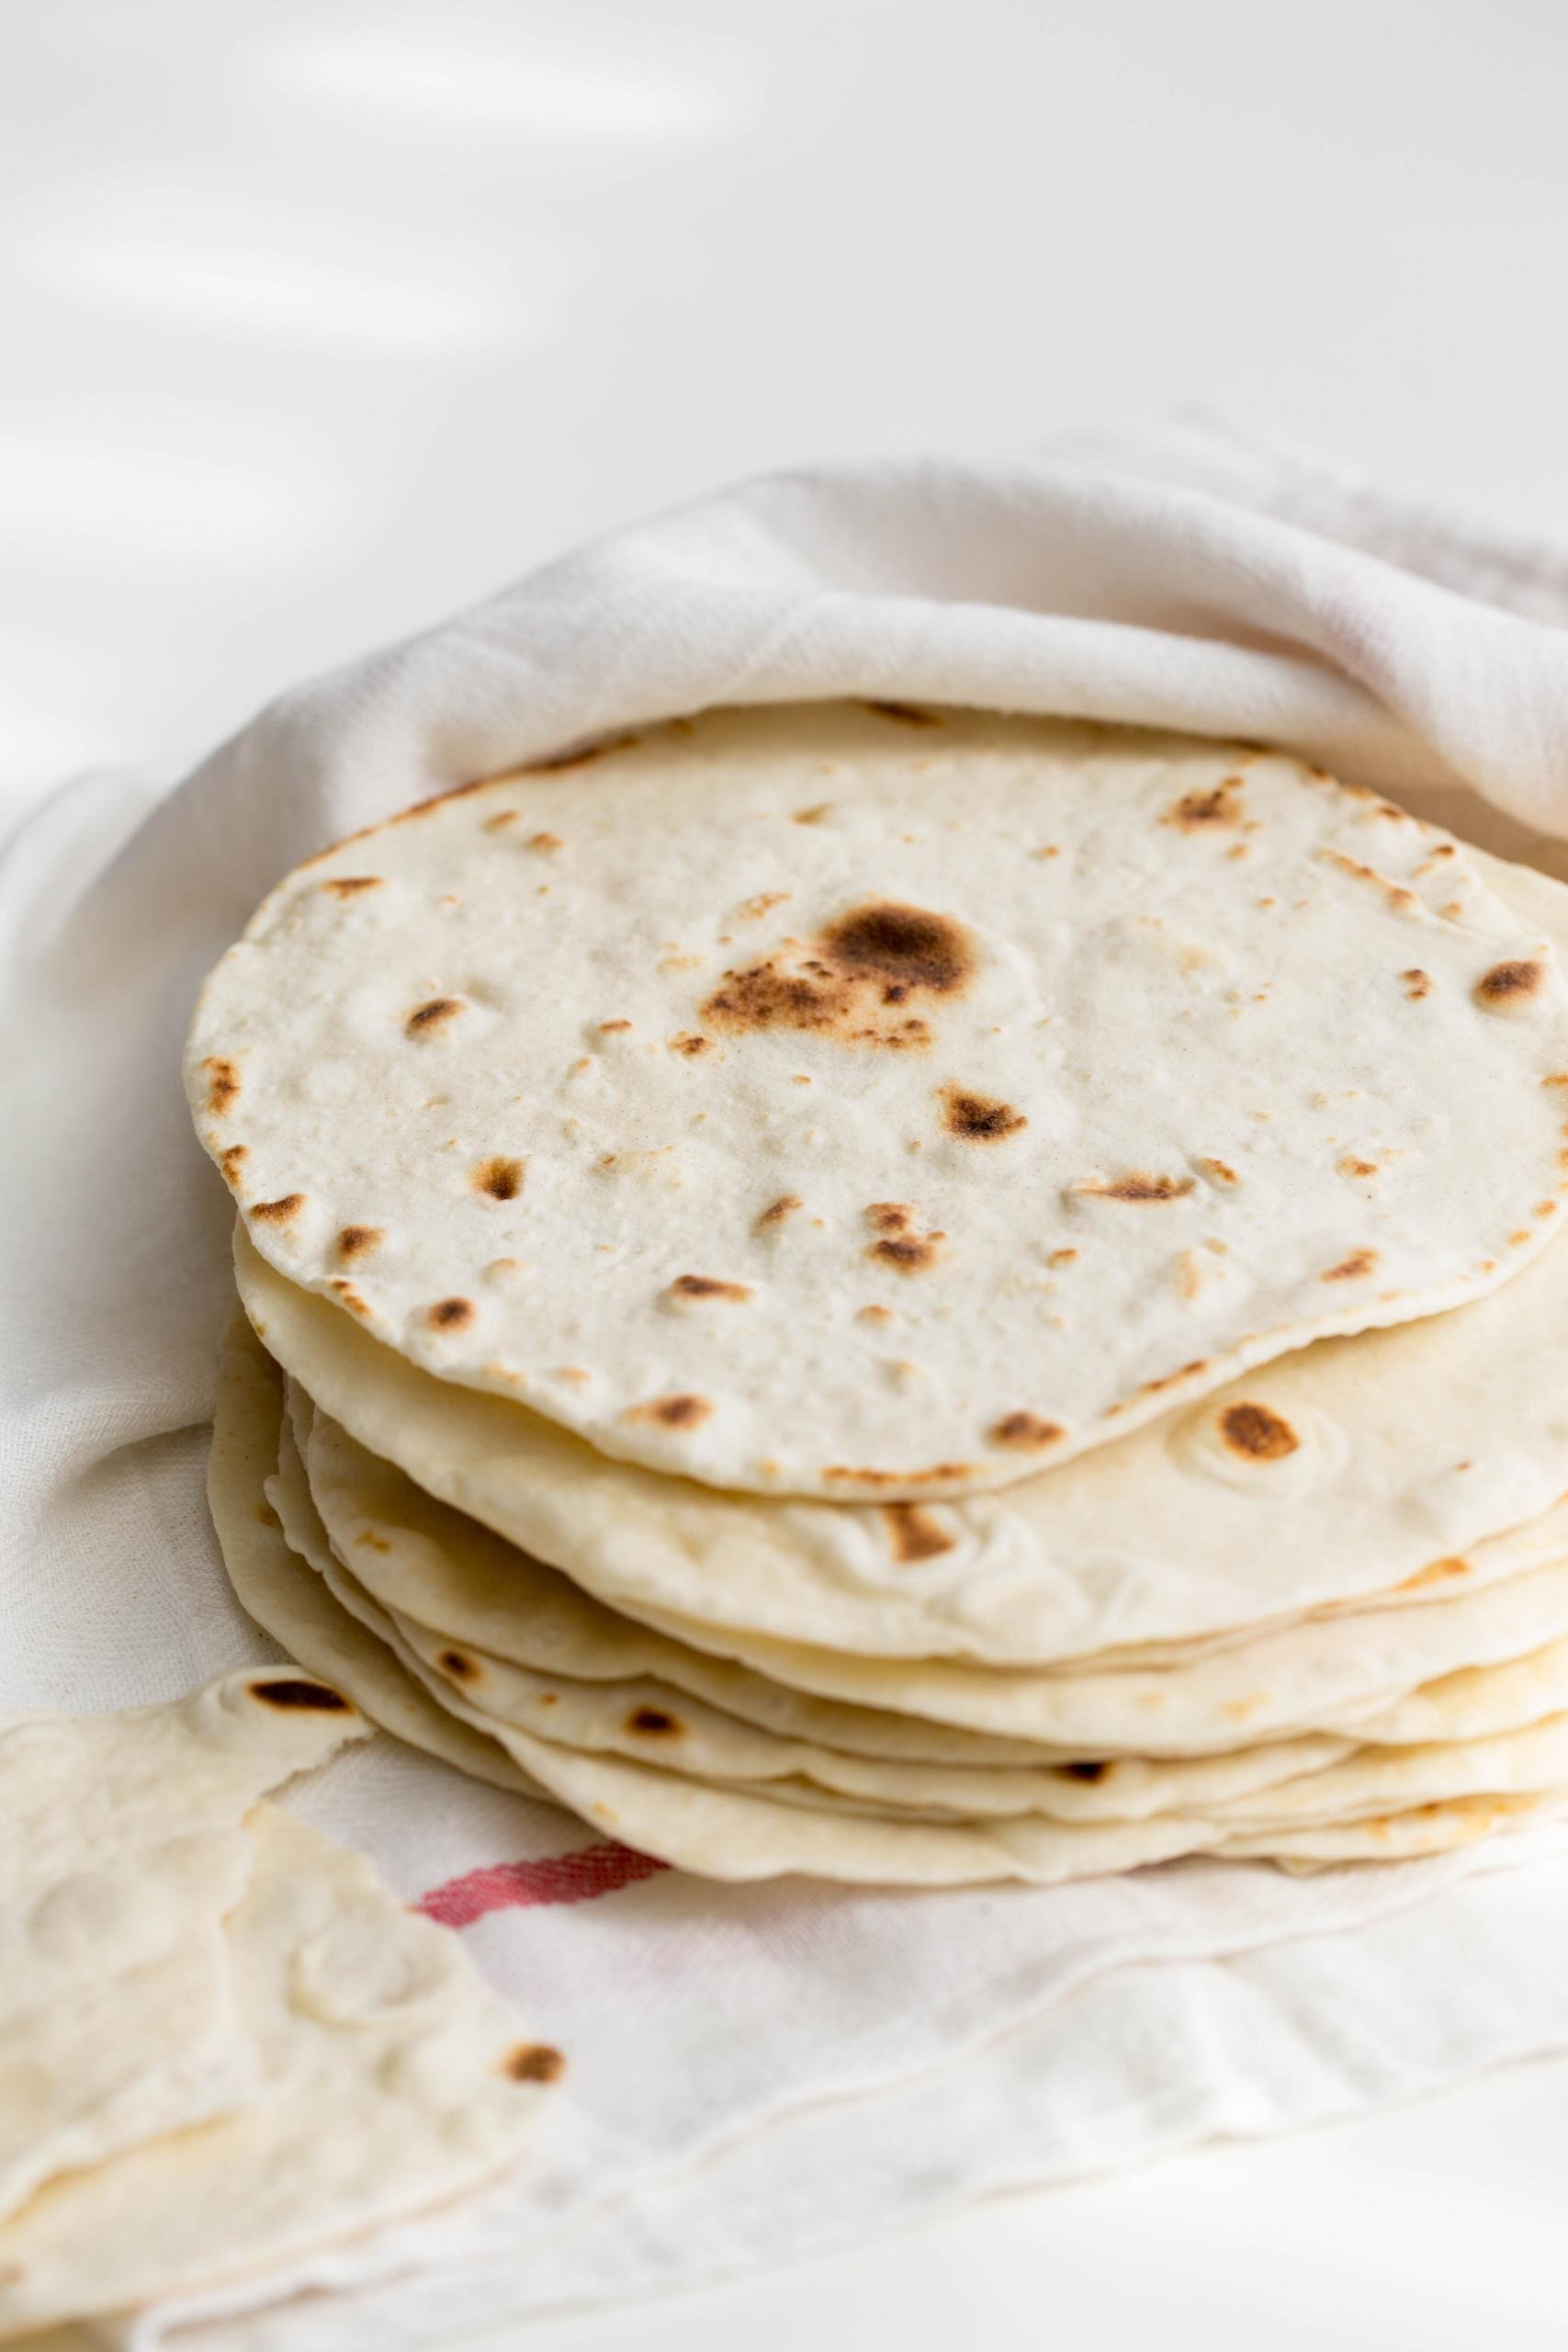 Tortillas in a kitchen towel